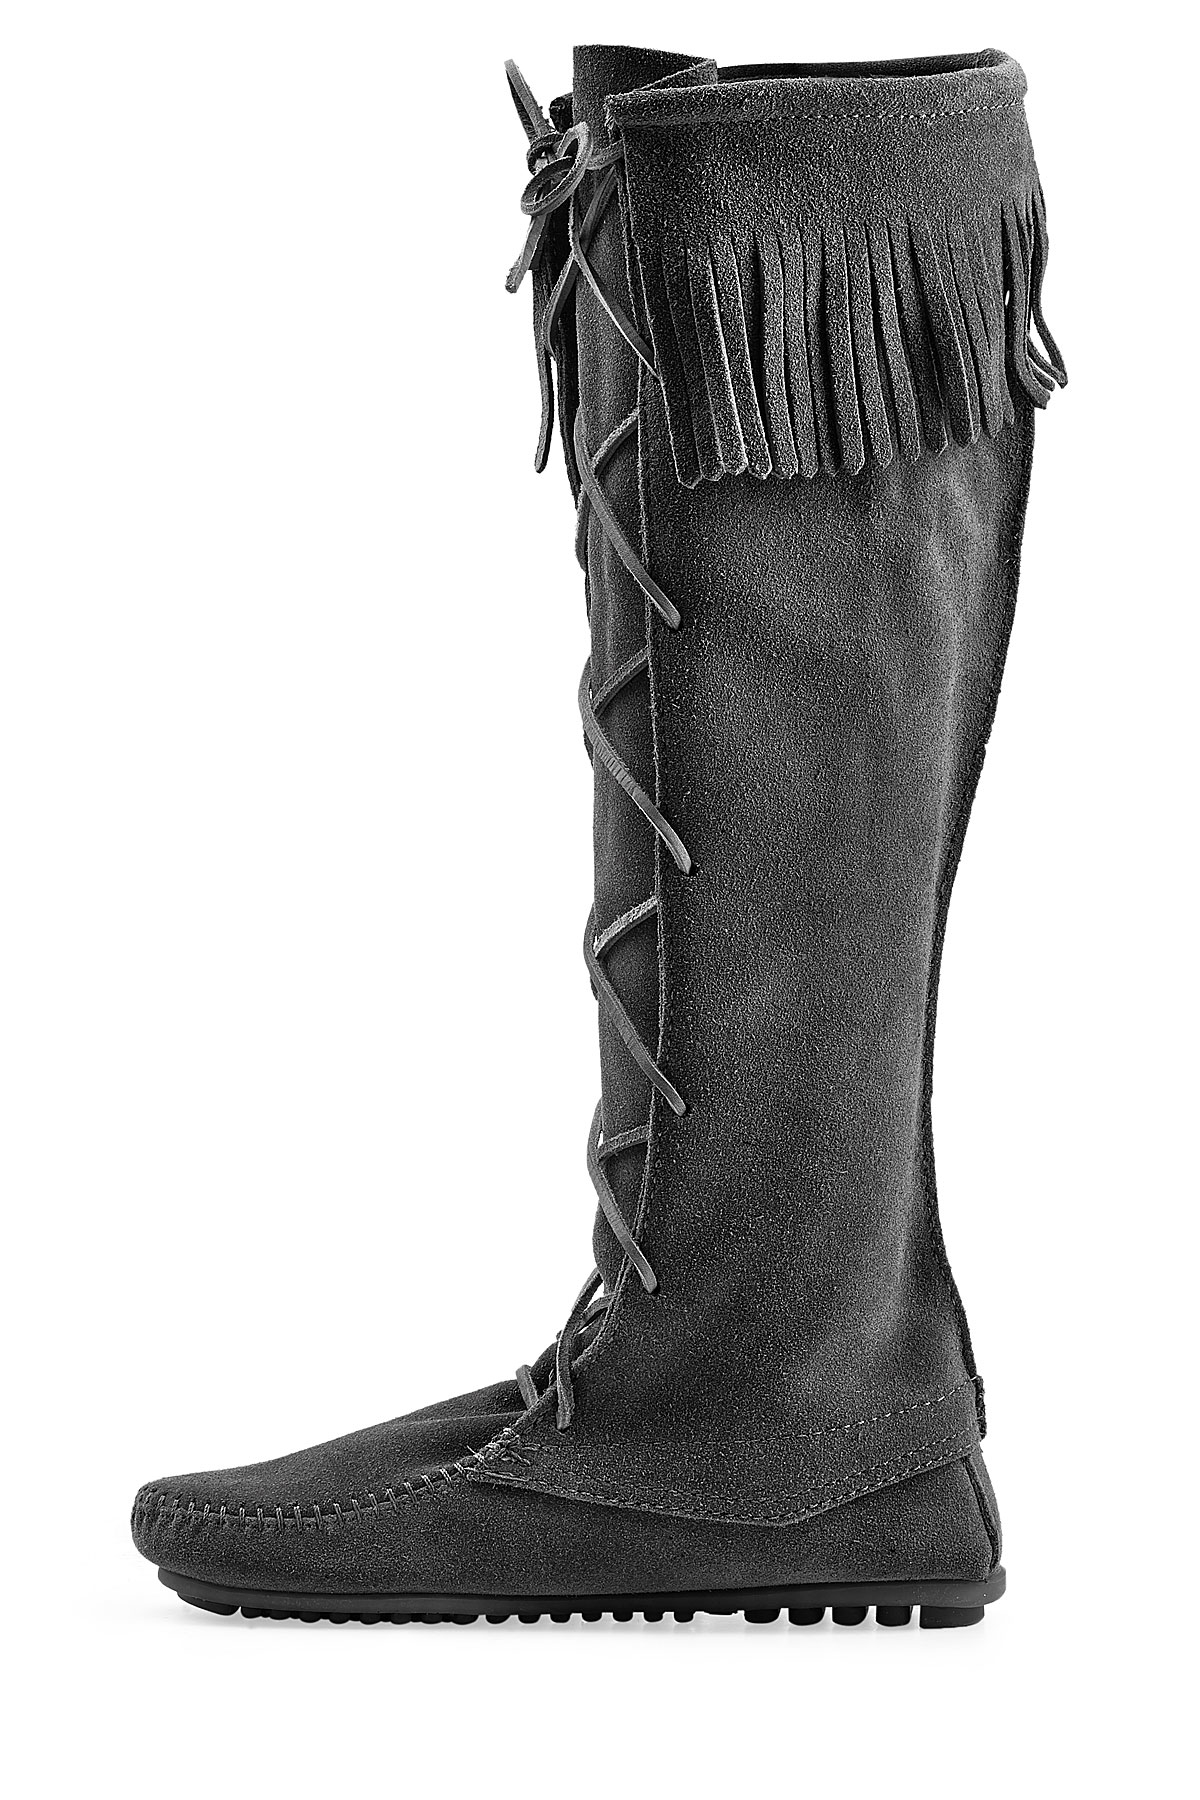 minnetonka fringed suede knee boots with lace up front